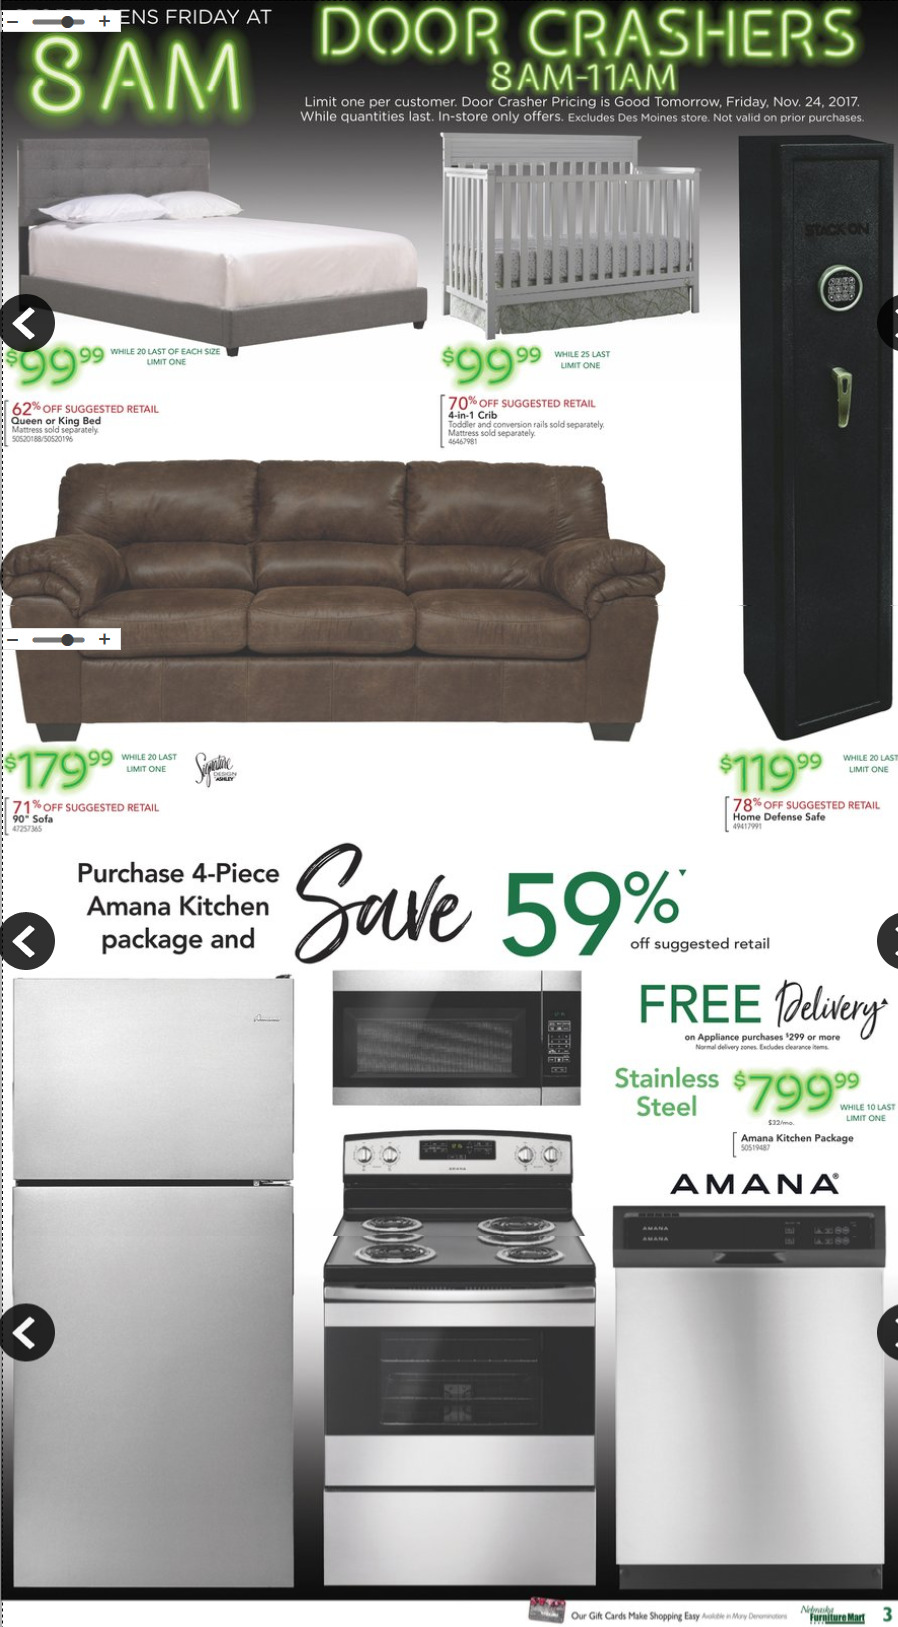 Find Nebraska Furniture Mart Pre Black Friday 2017 Deals, Offers And Door  Busters.